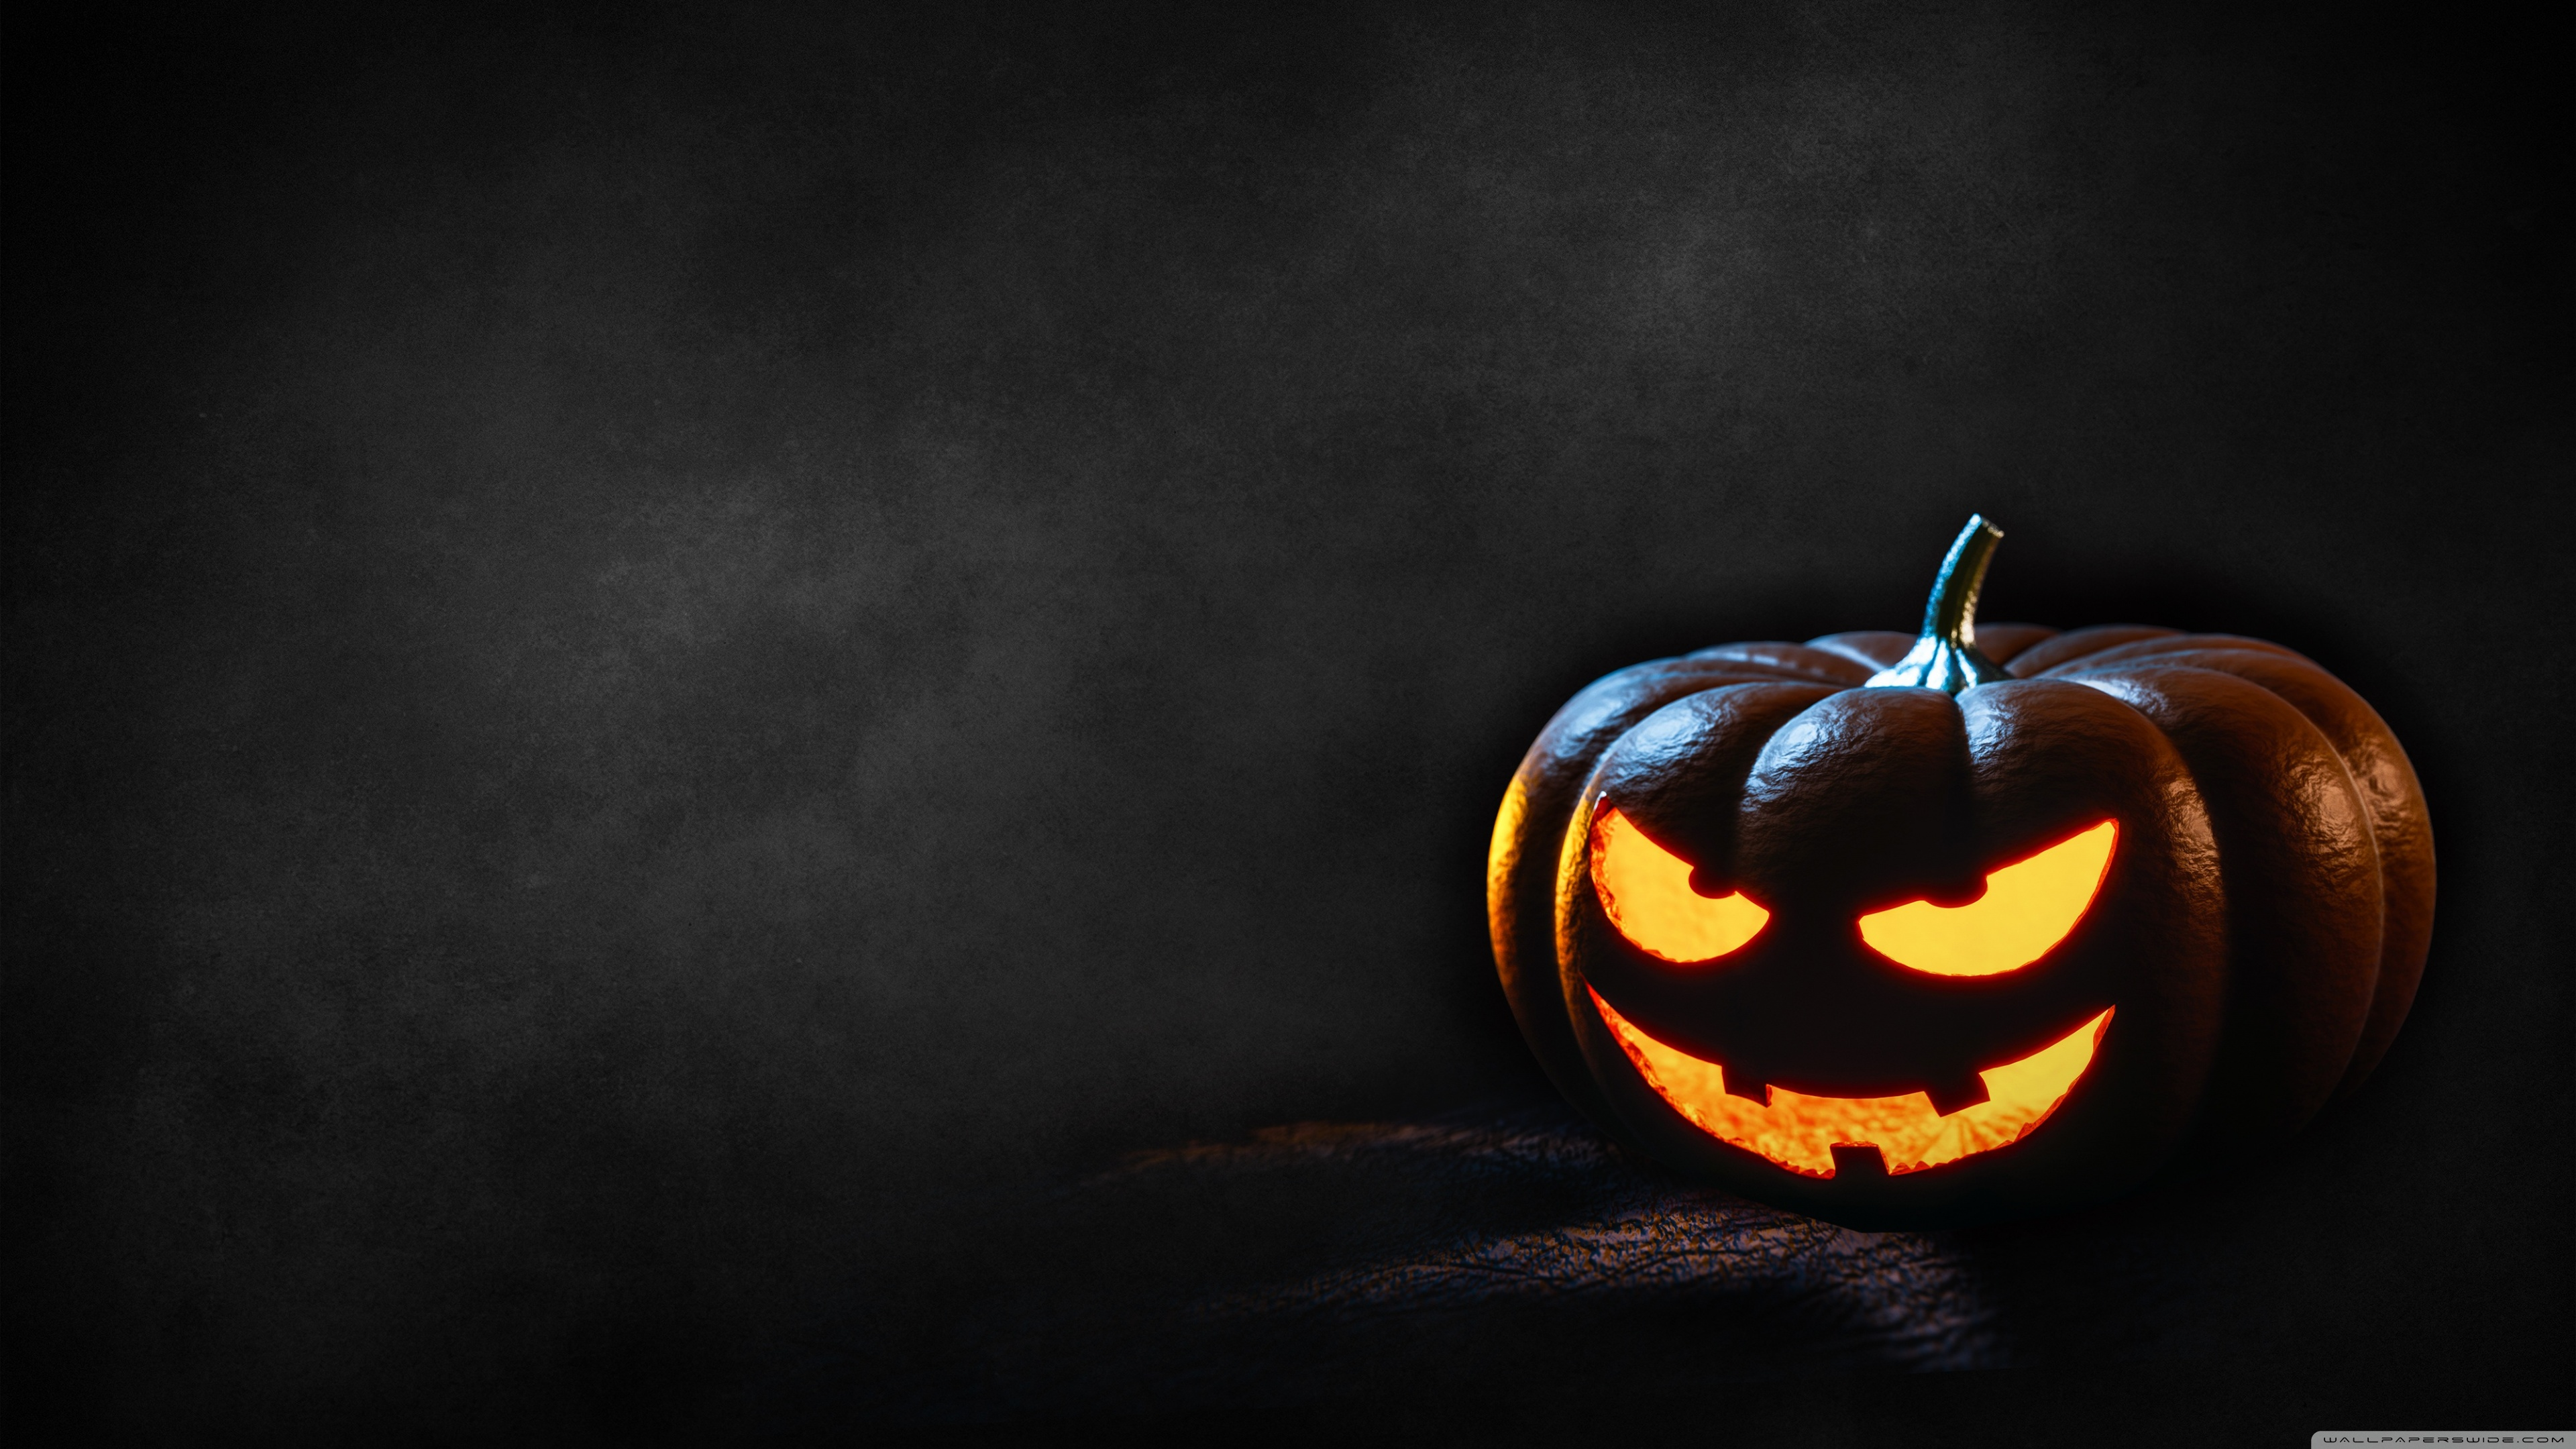 WallpapersWidecom Halloween HD Desktop Wallpapers for 4K Ultra 3840x2160